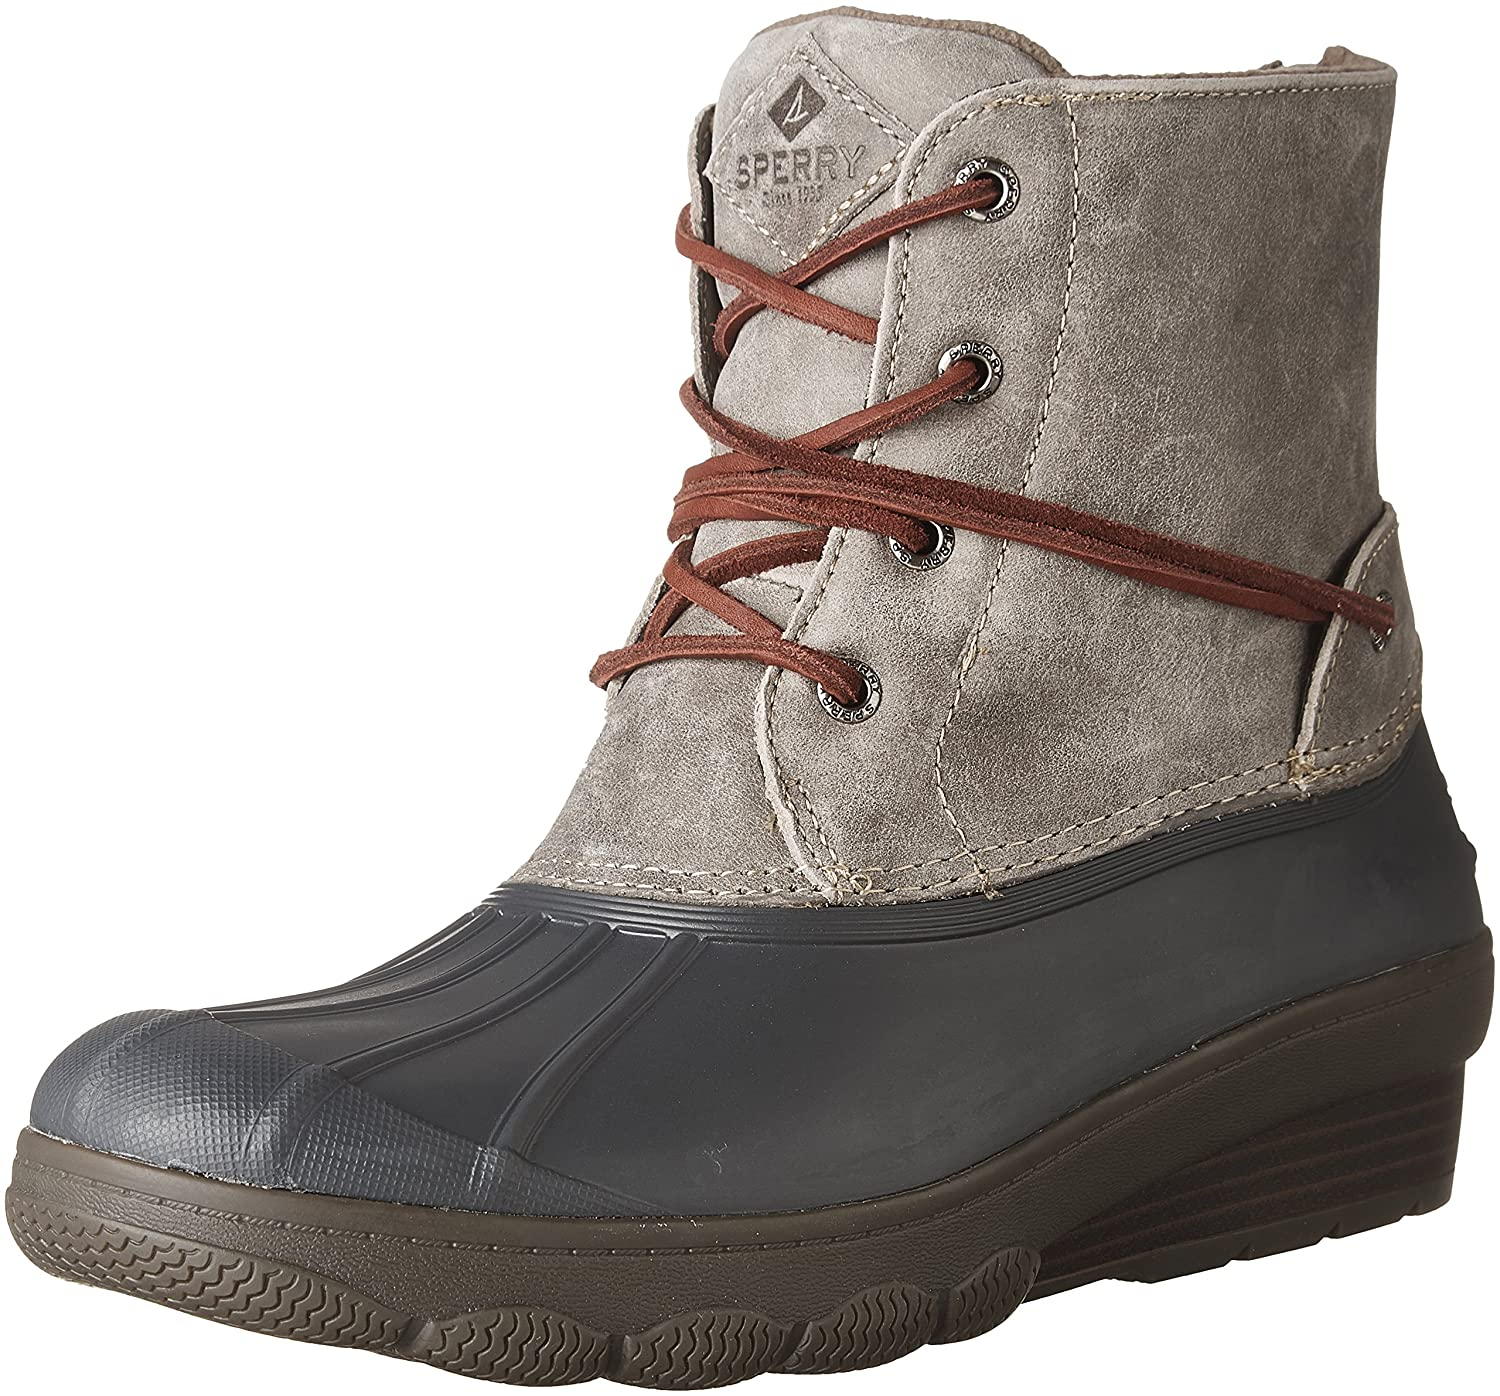 Sperry Top-Sider Women's Saltwater Wedge Tide Rain Boot B01N4P2BRW 6.5 B(M) US|Grey